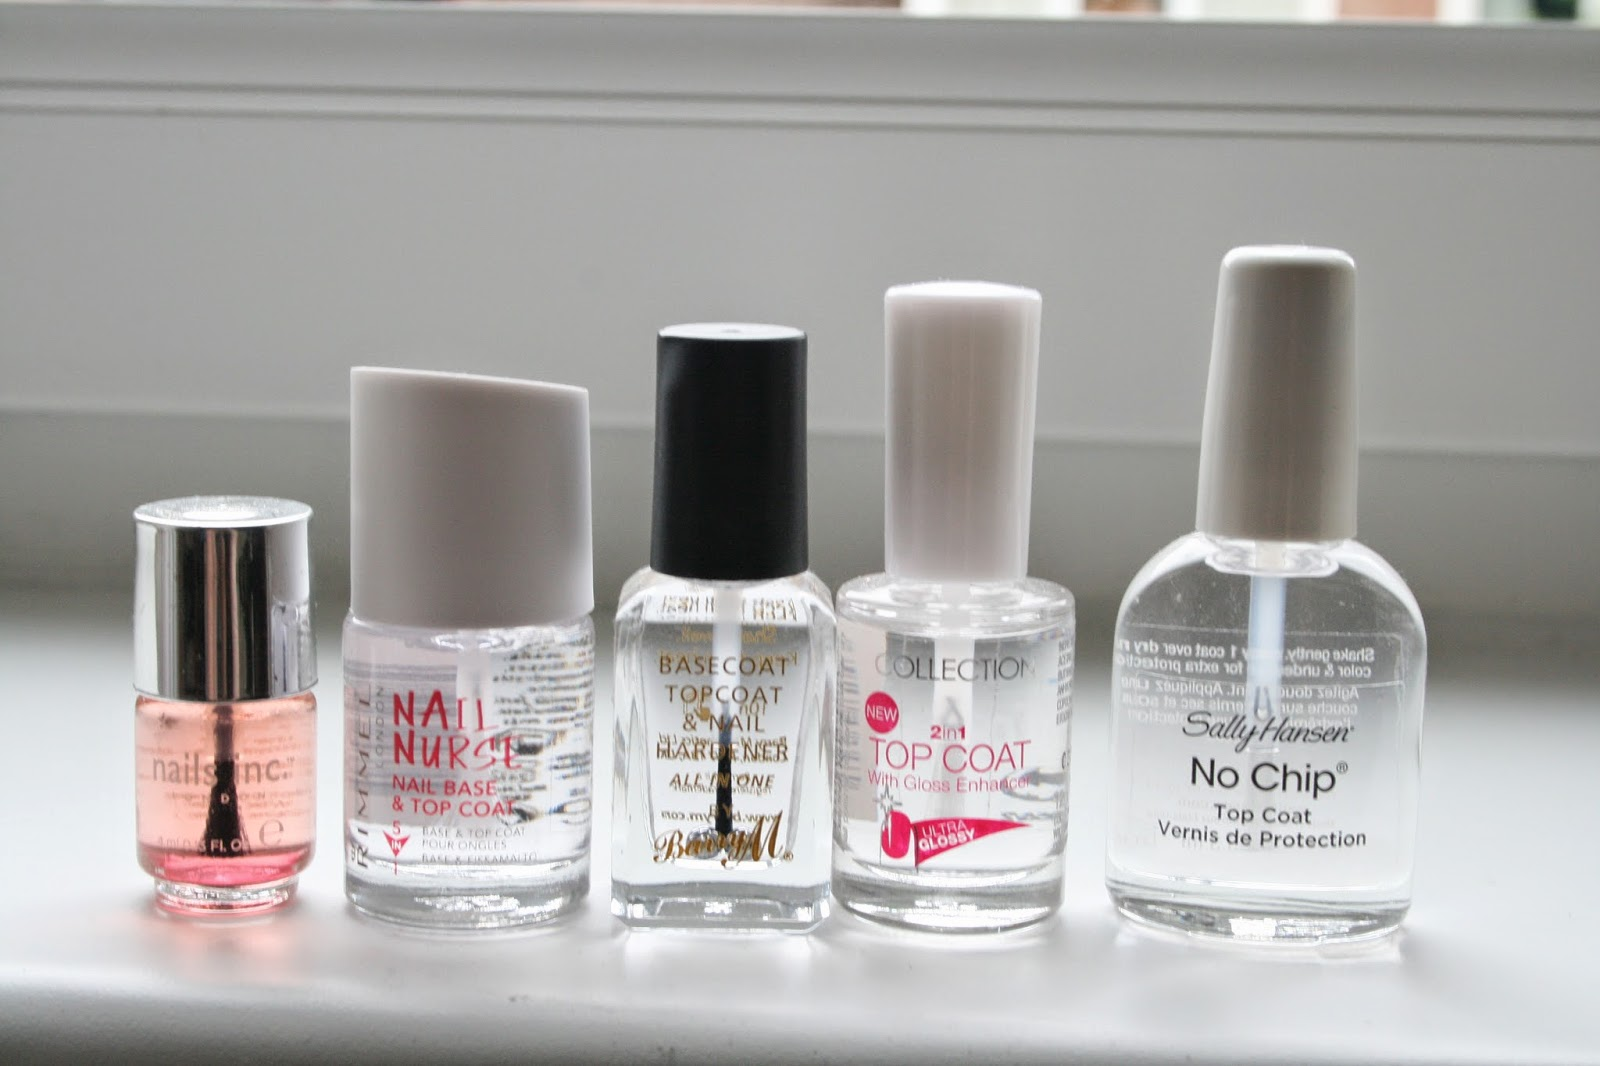 Nails Inc Caviar, Rimmel Nail Nurse, Barry M, Collection, Sally Hansen